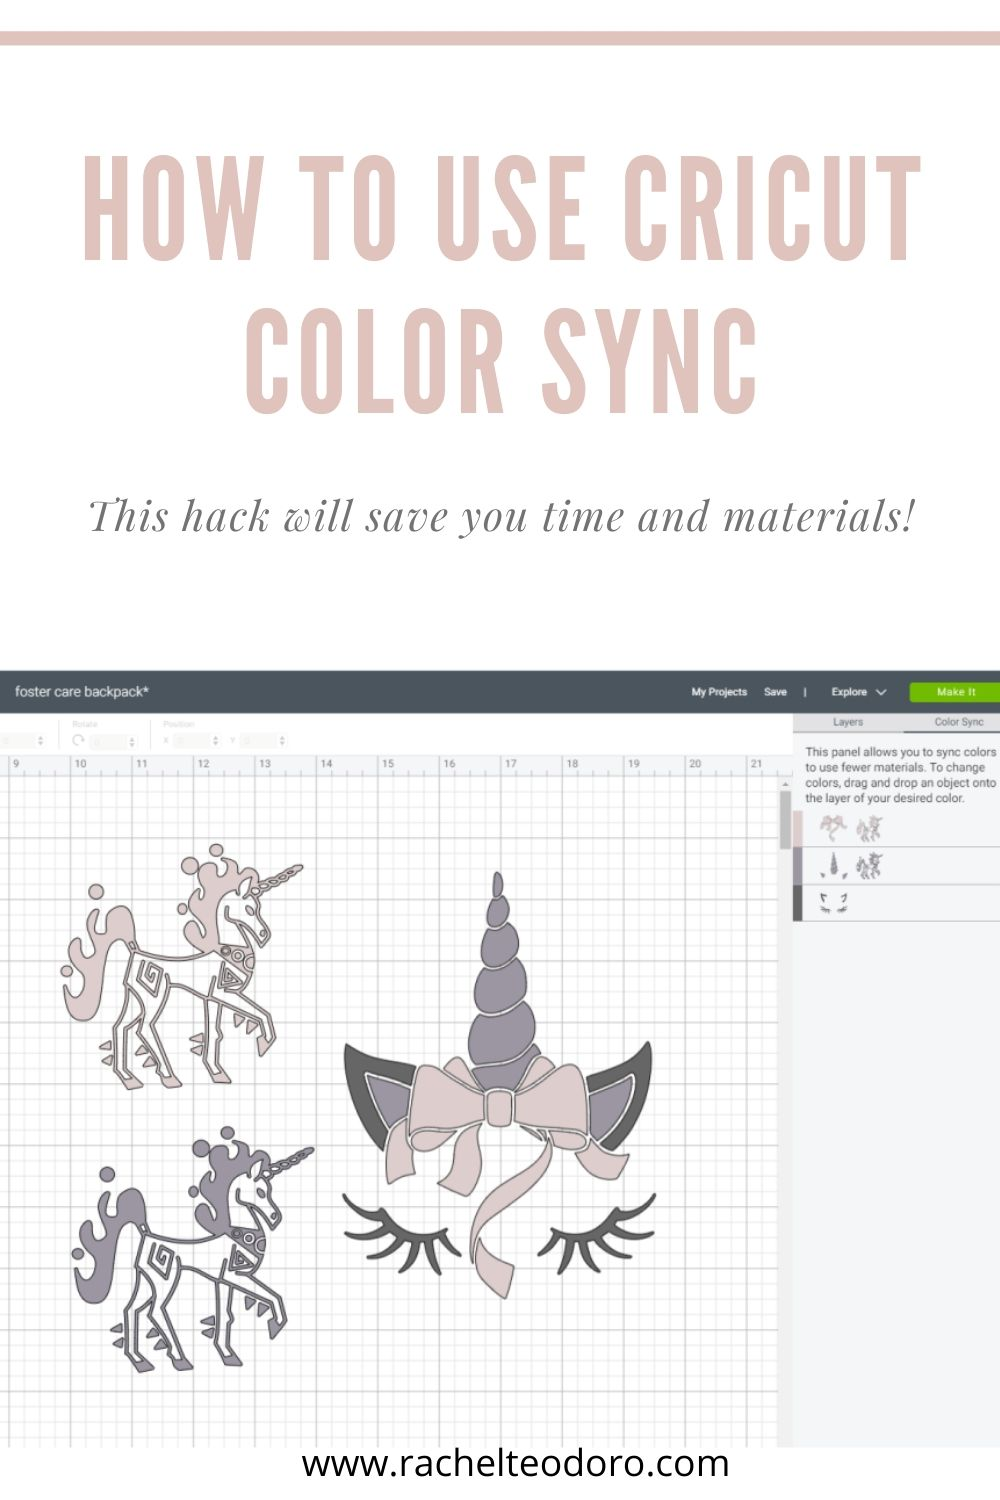 using color sync in cricut